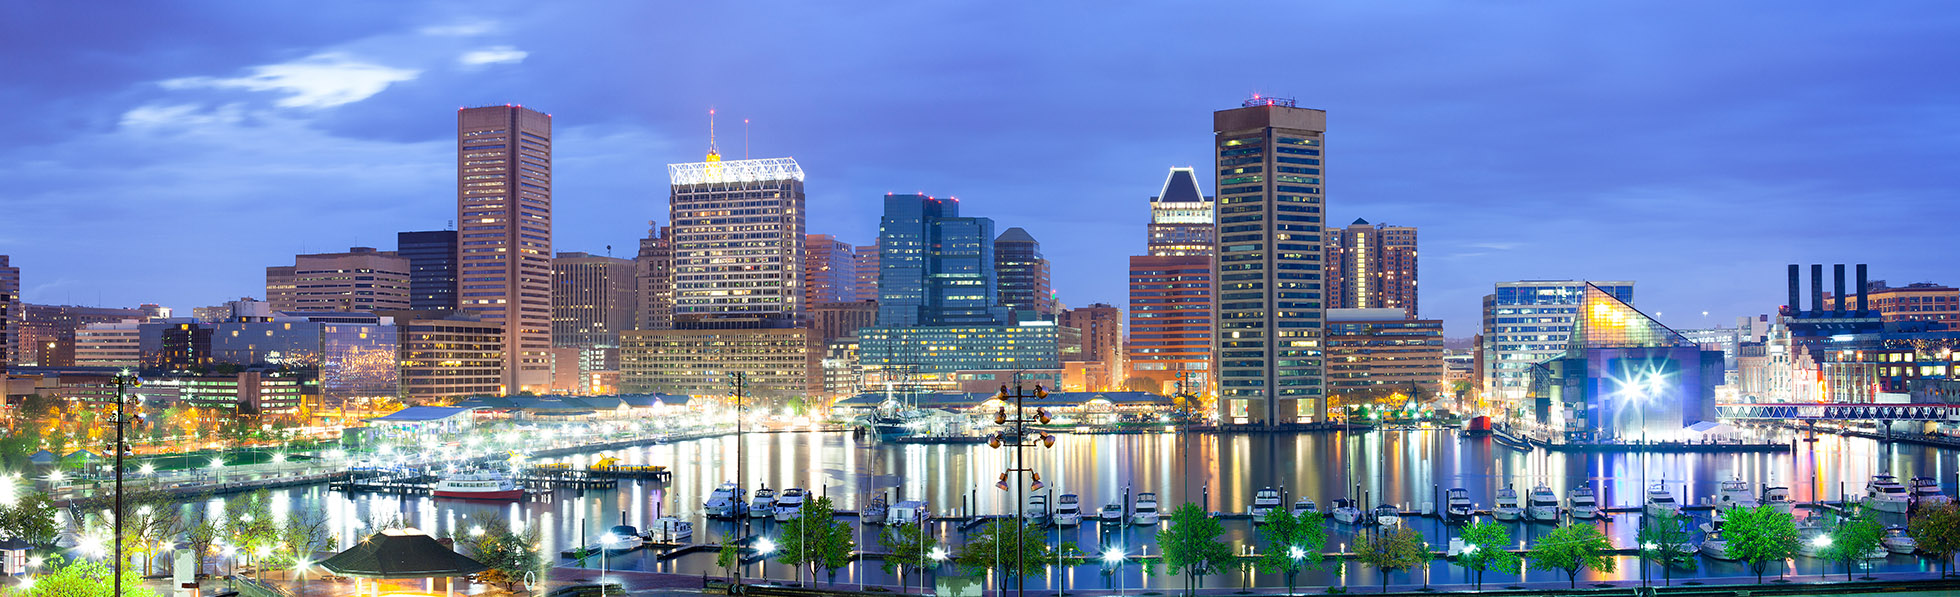 baltimore-inner-harbor-night